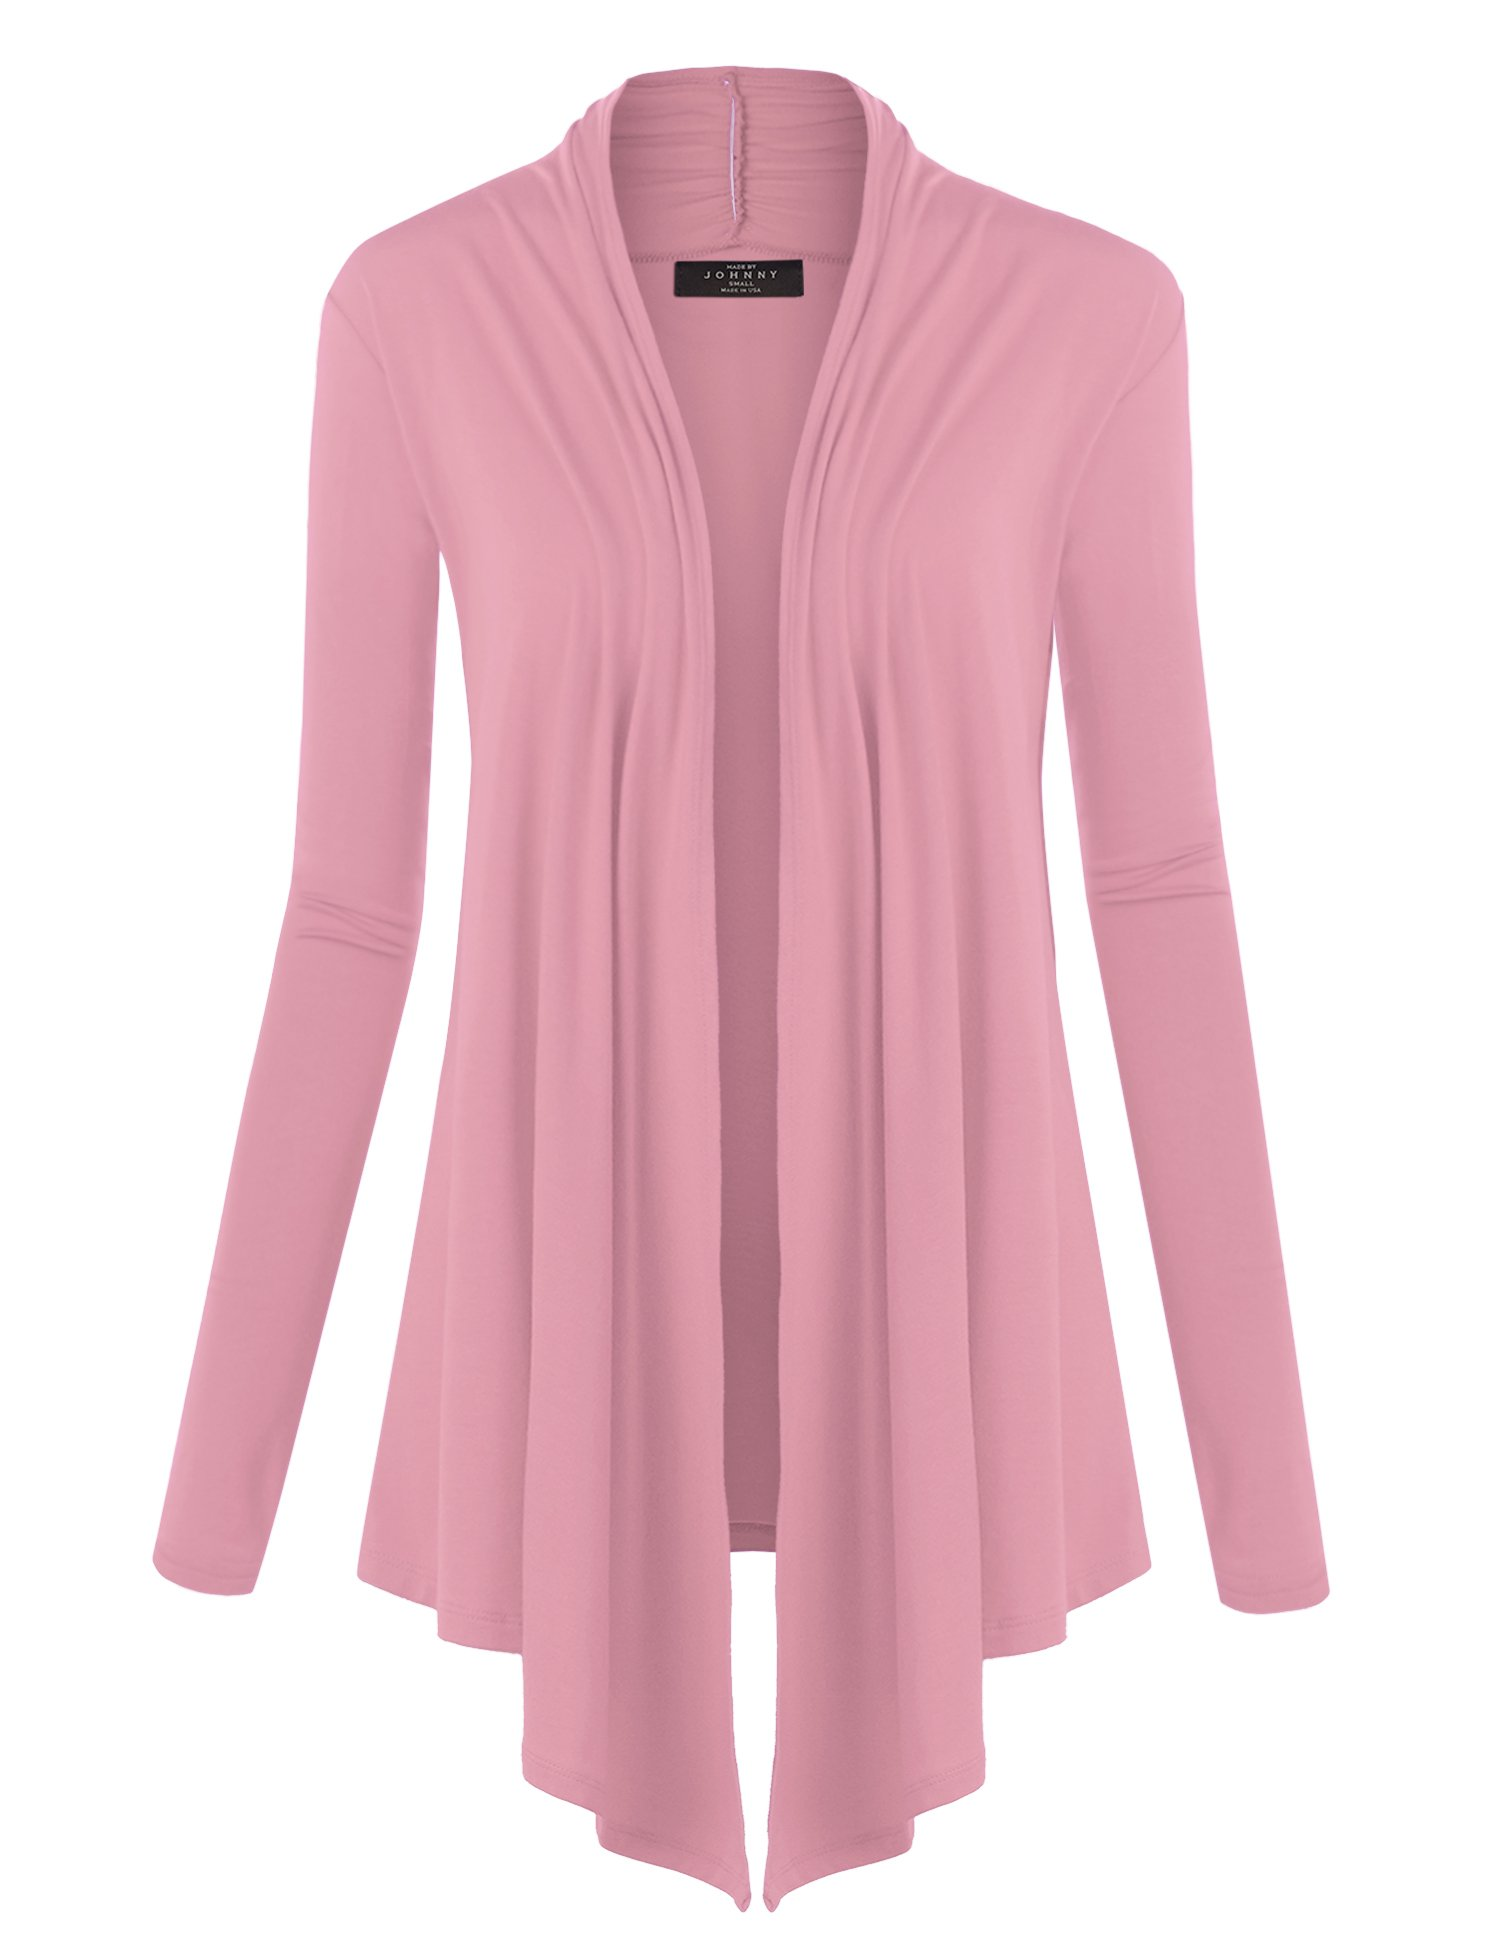 WSK850 Womens Draped Open- Front Cardigan XXL Pink by Lock and Love (Image #6)